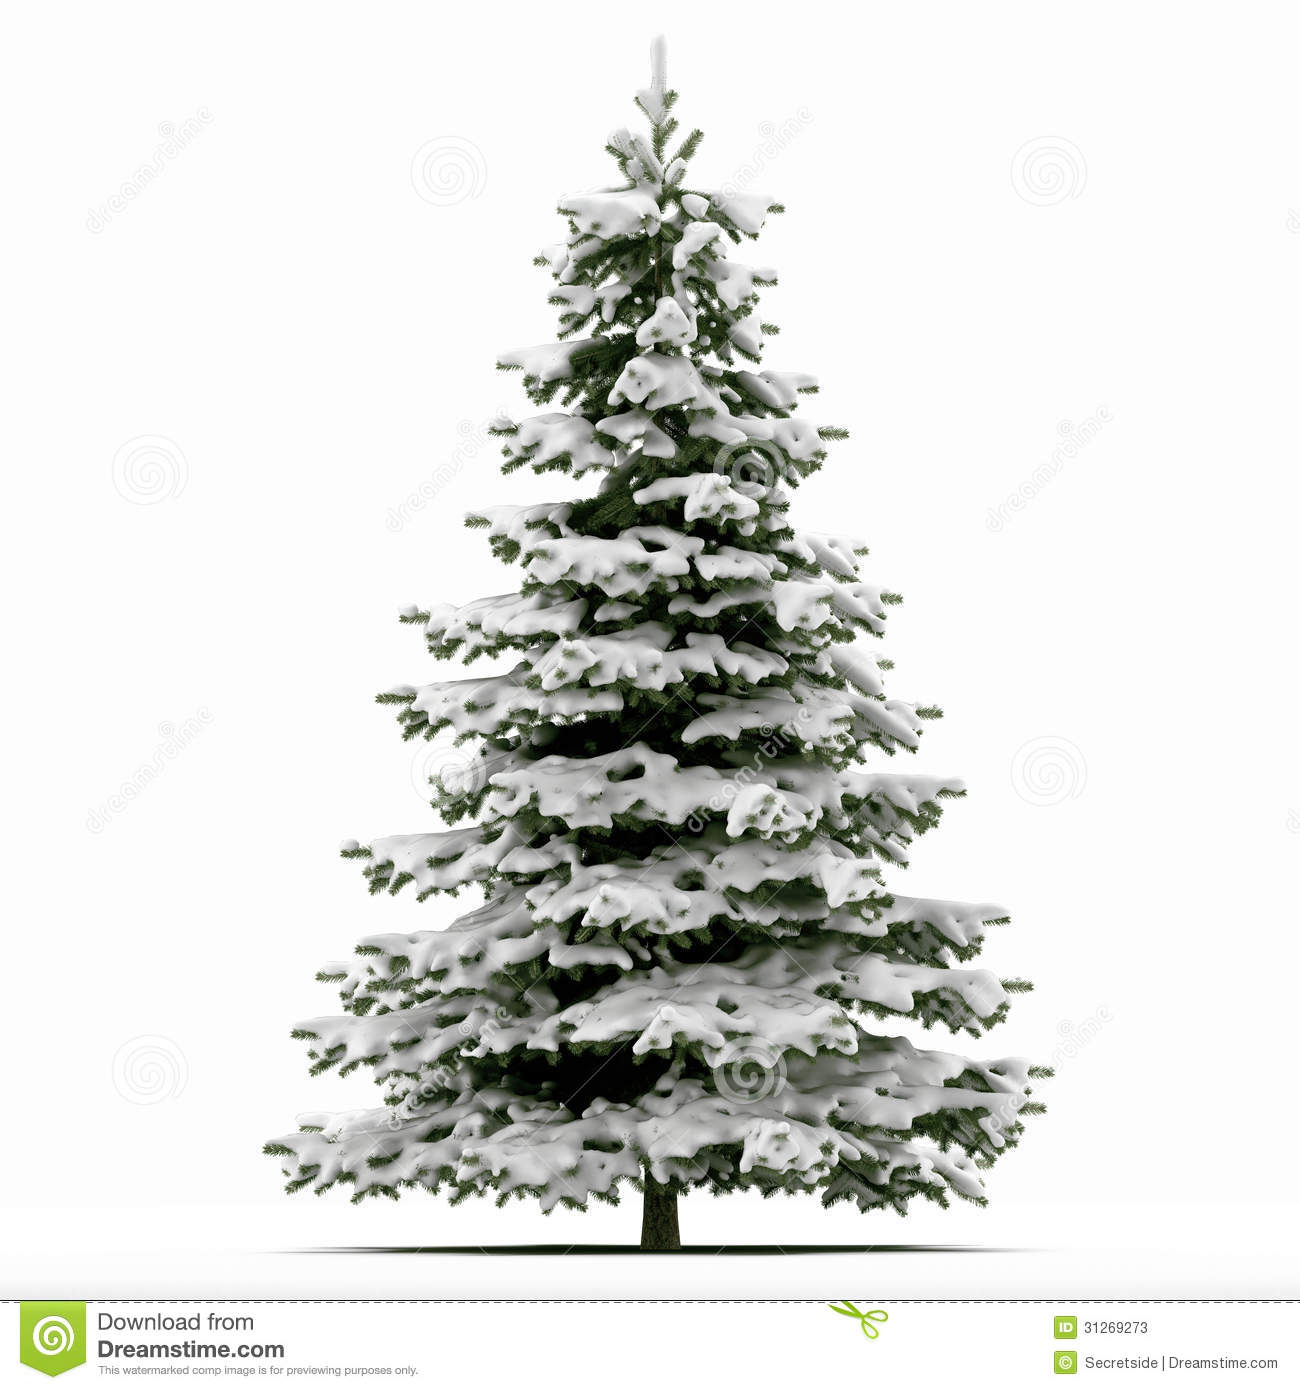 snow covered christmas tree stock photos image 31269273. Black Bedroom Furniture Sets. Home Design Ideas